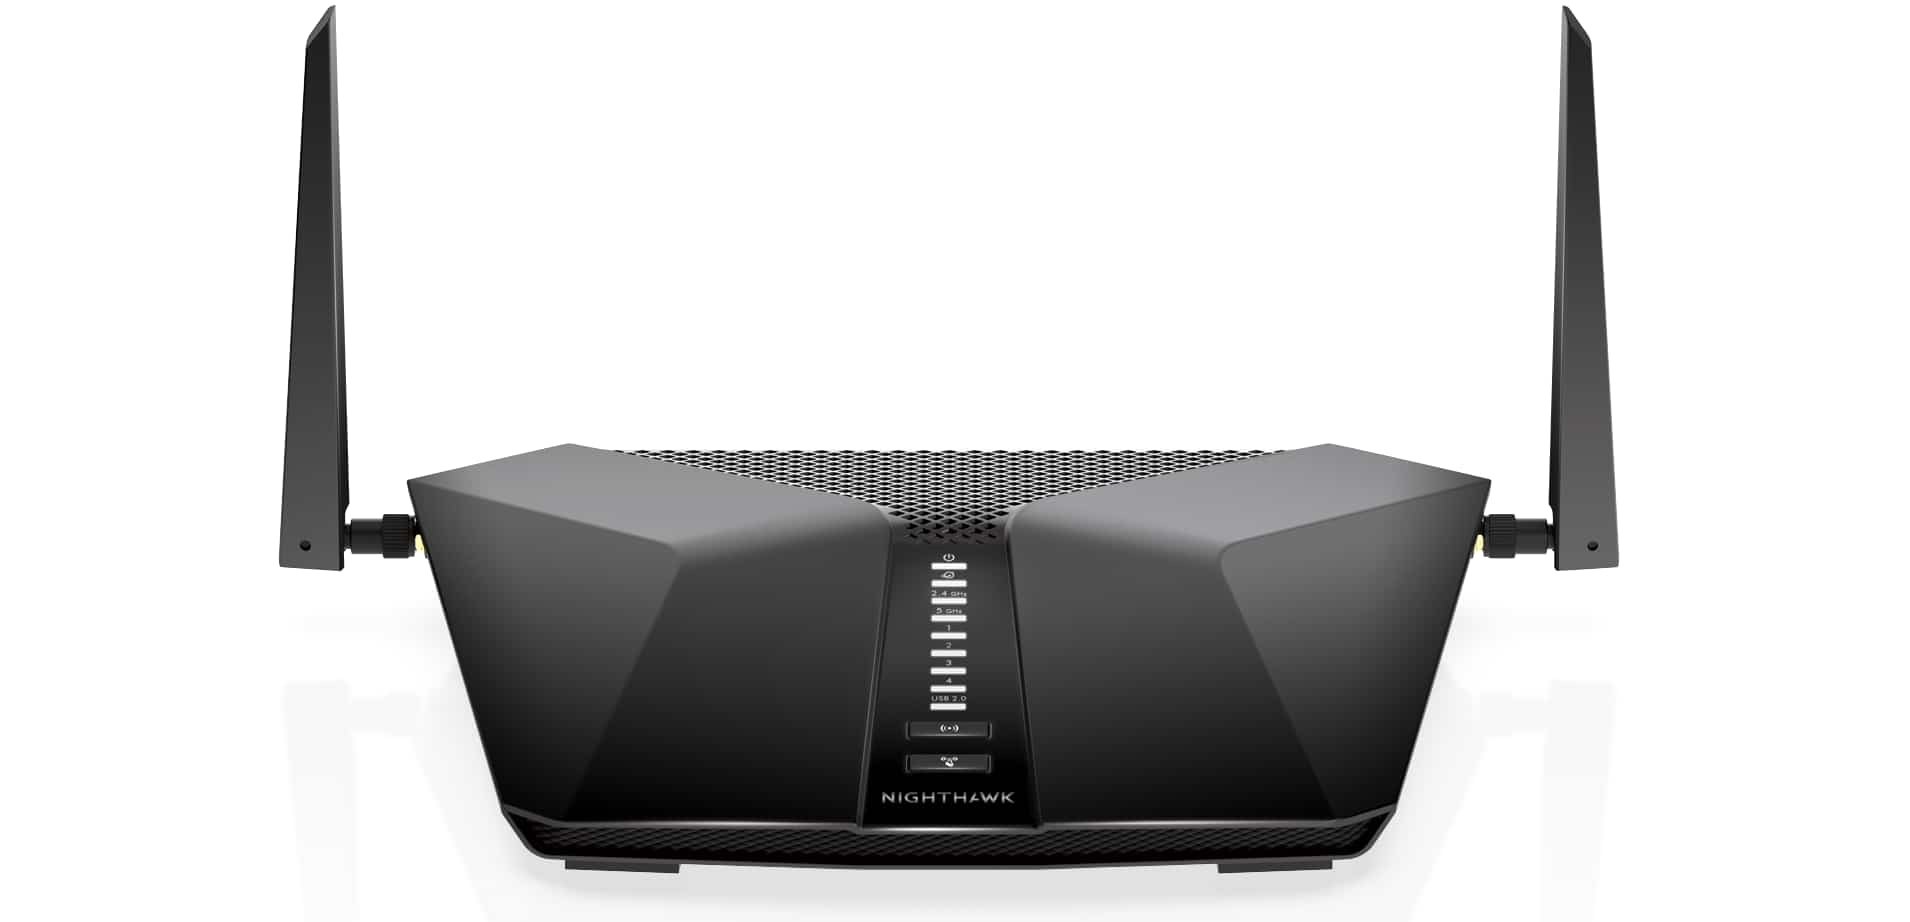 Netgear Brings A 4g Backup To Routers This Year Pickr